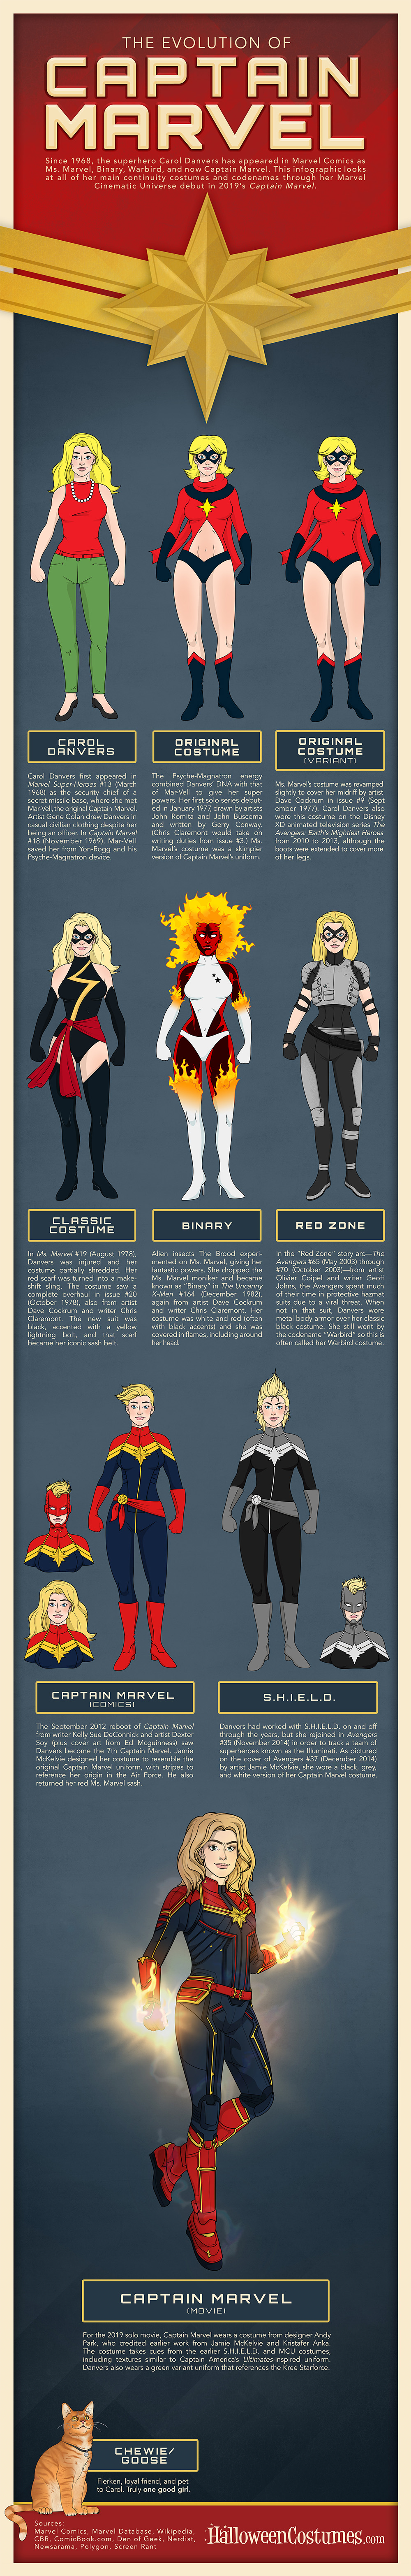 The Evolution Of Captain Marvel Infographic Halloweencostumes Com Blog A page for describing wmg: the evolution of captain marvel